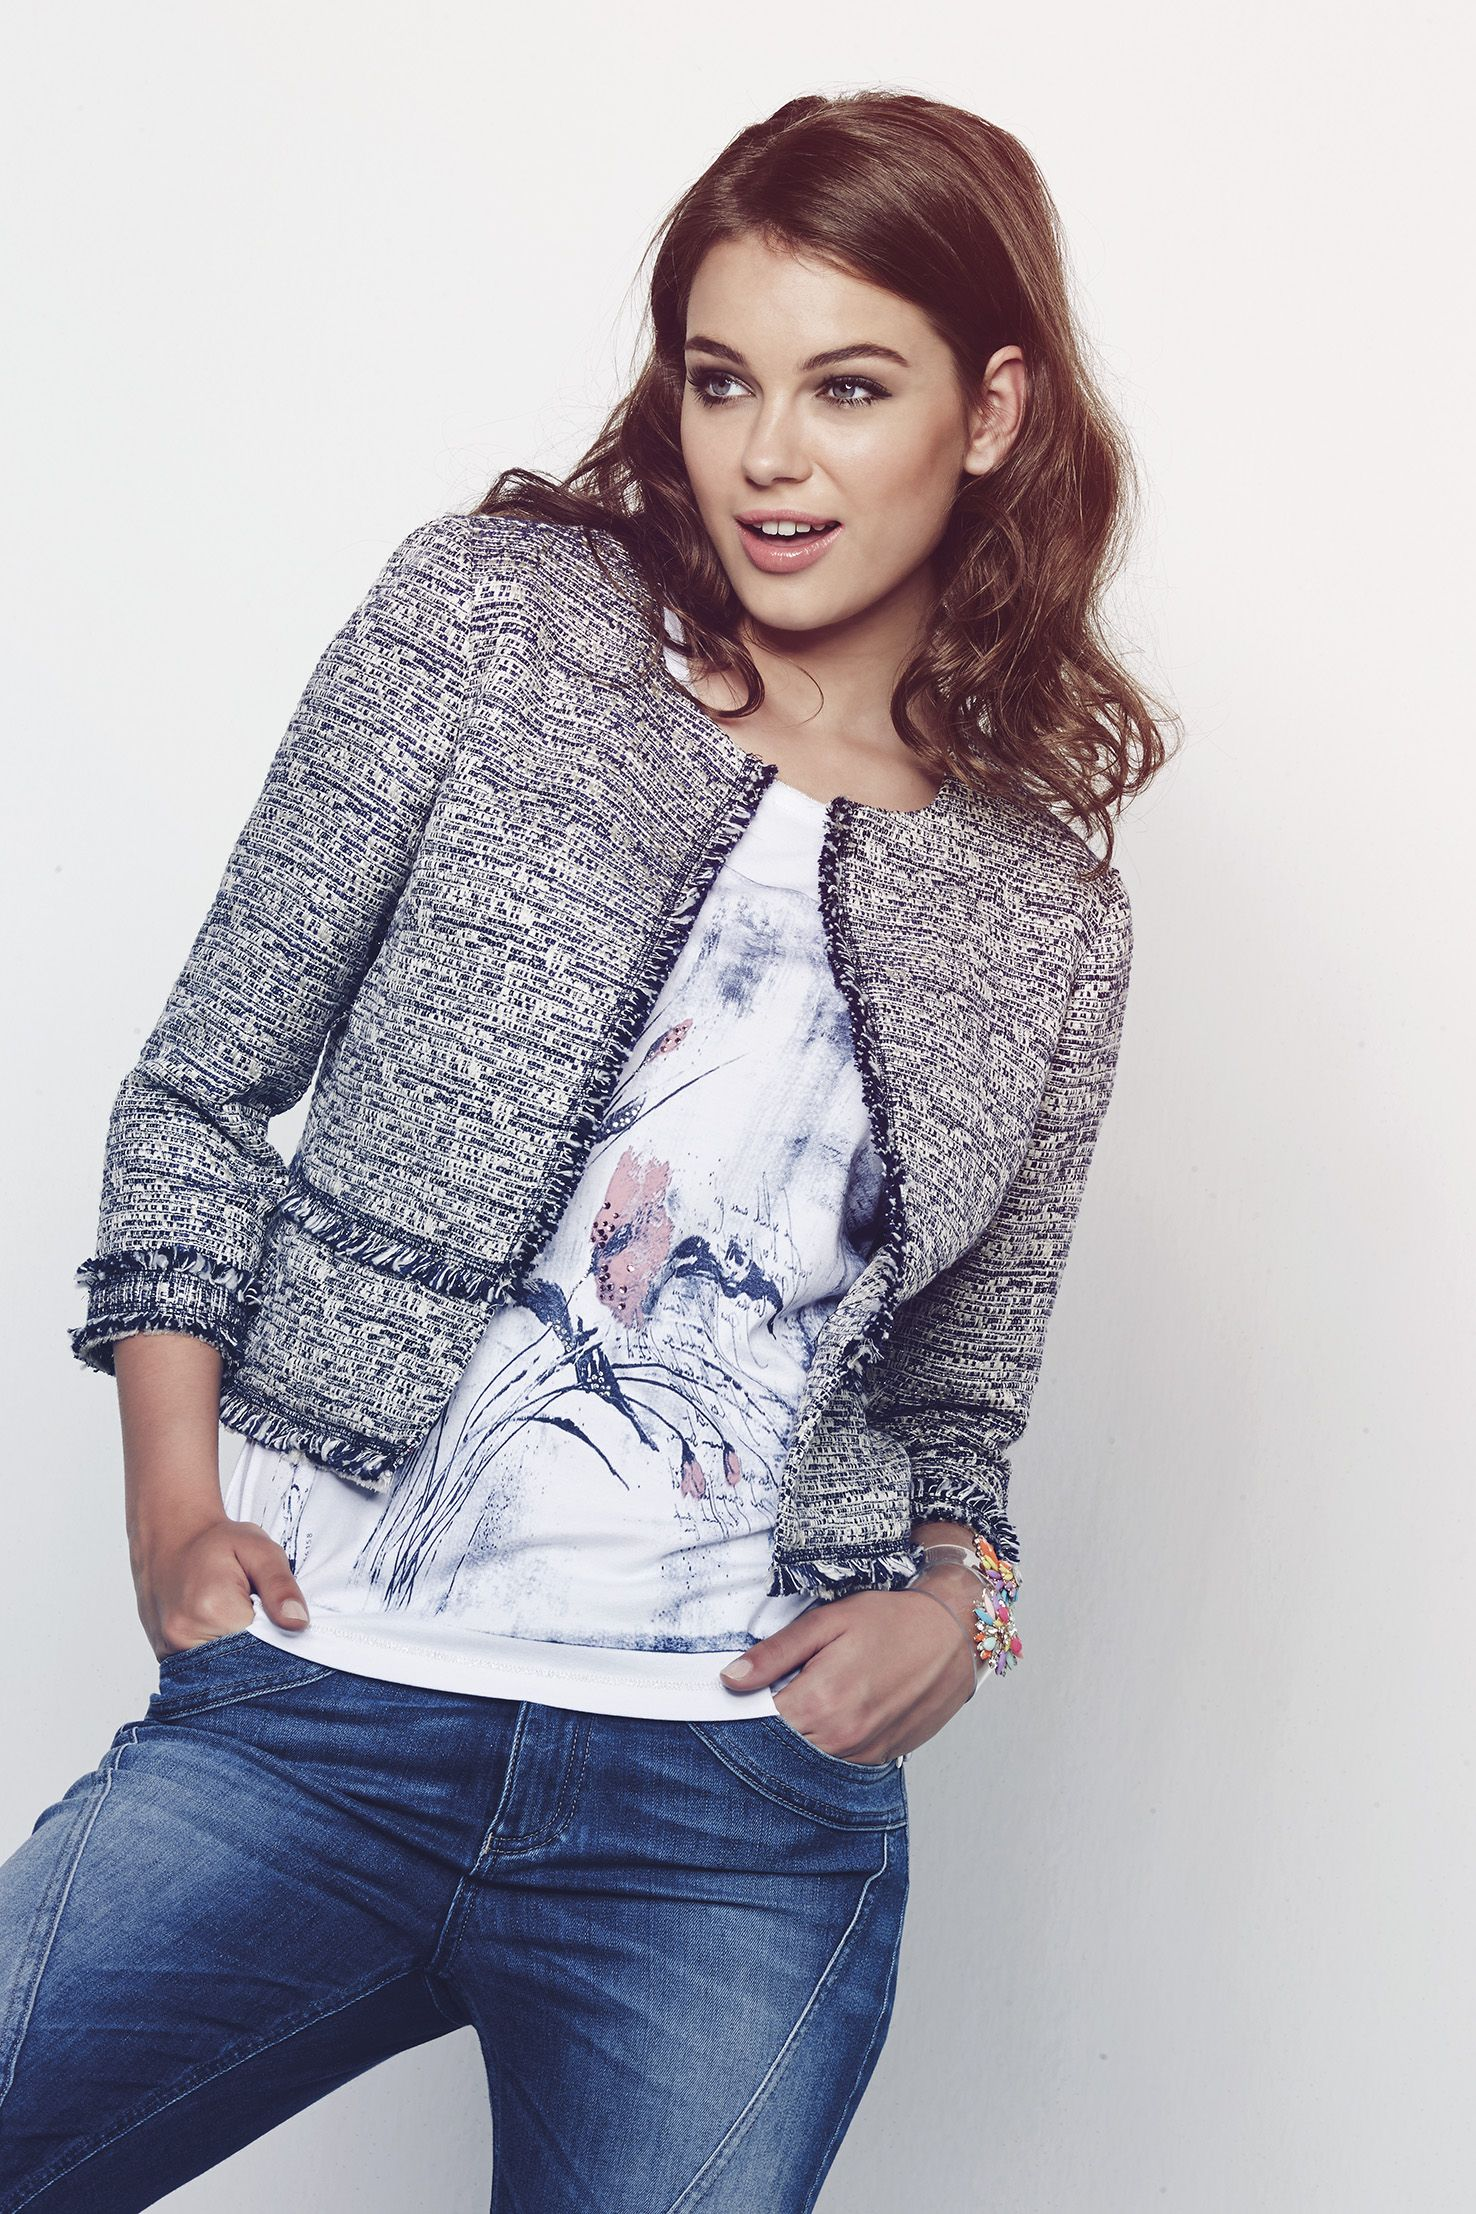 new arrival e93ac dd819 Chanel inspired tweed jacket in white and blue cotton with ...